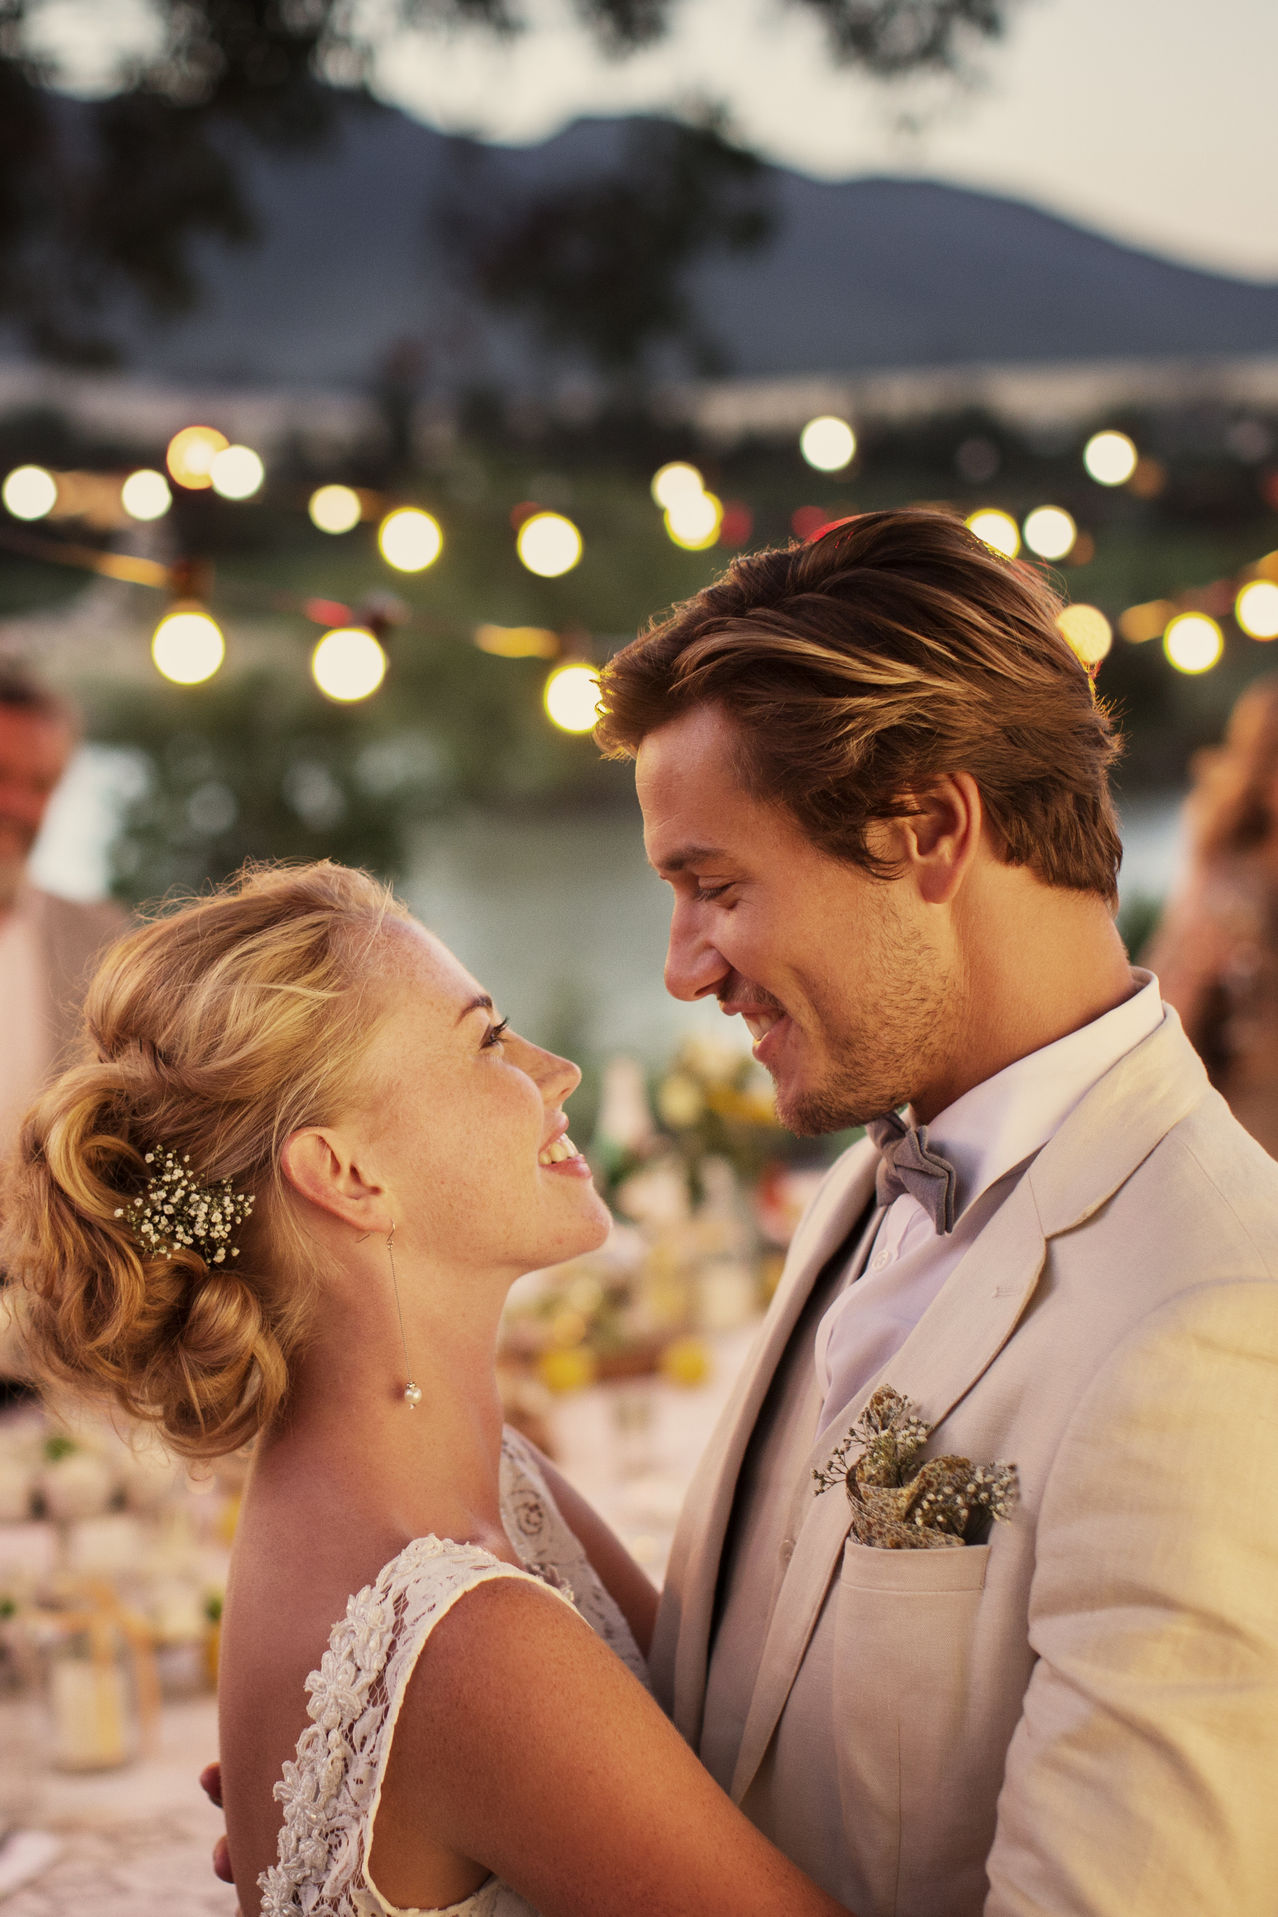 How Your College Major Can Predict Who You Will Marry